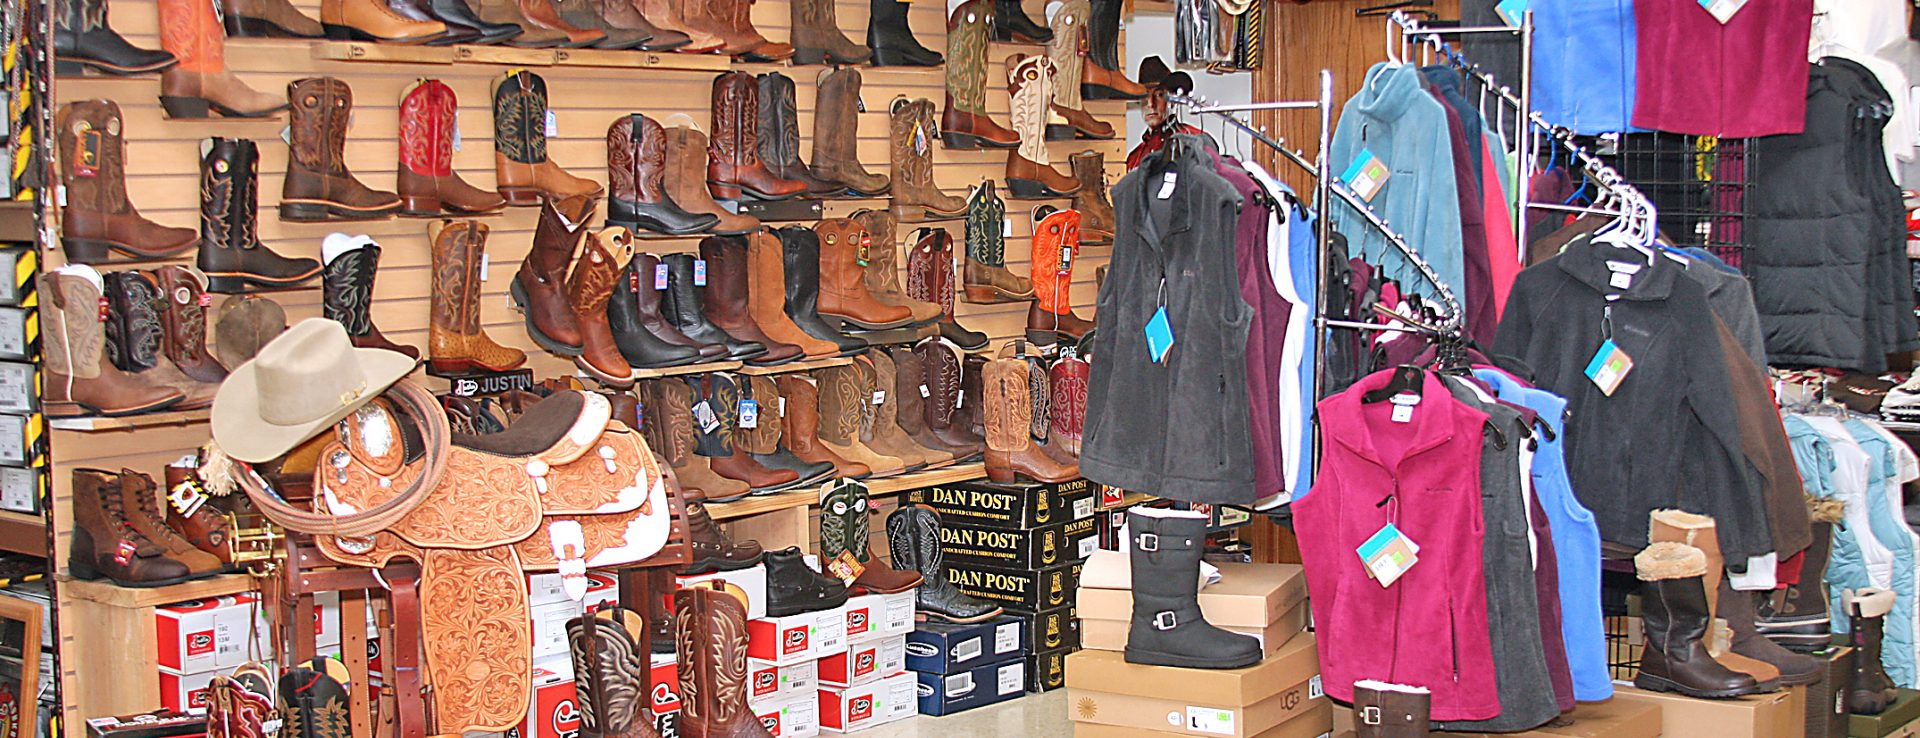 Charm Harness and Boot Ohio's Amish Country  Ohio's Amish Country